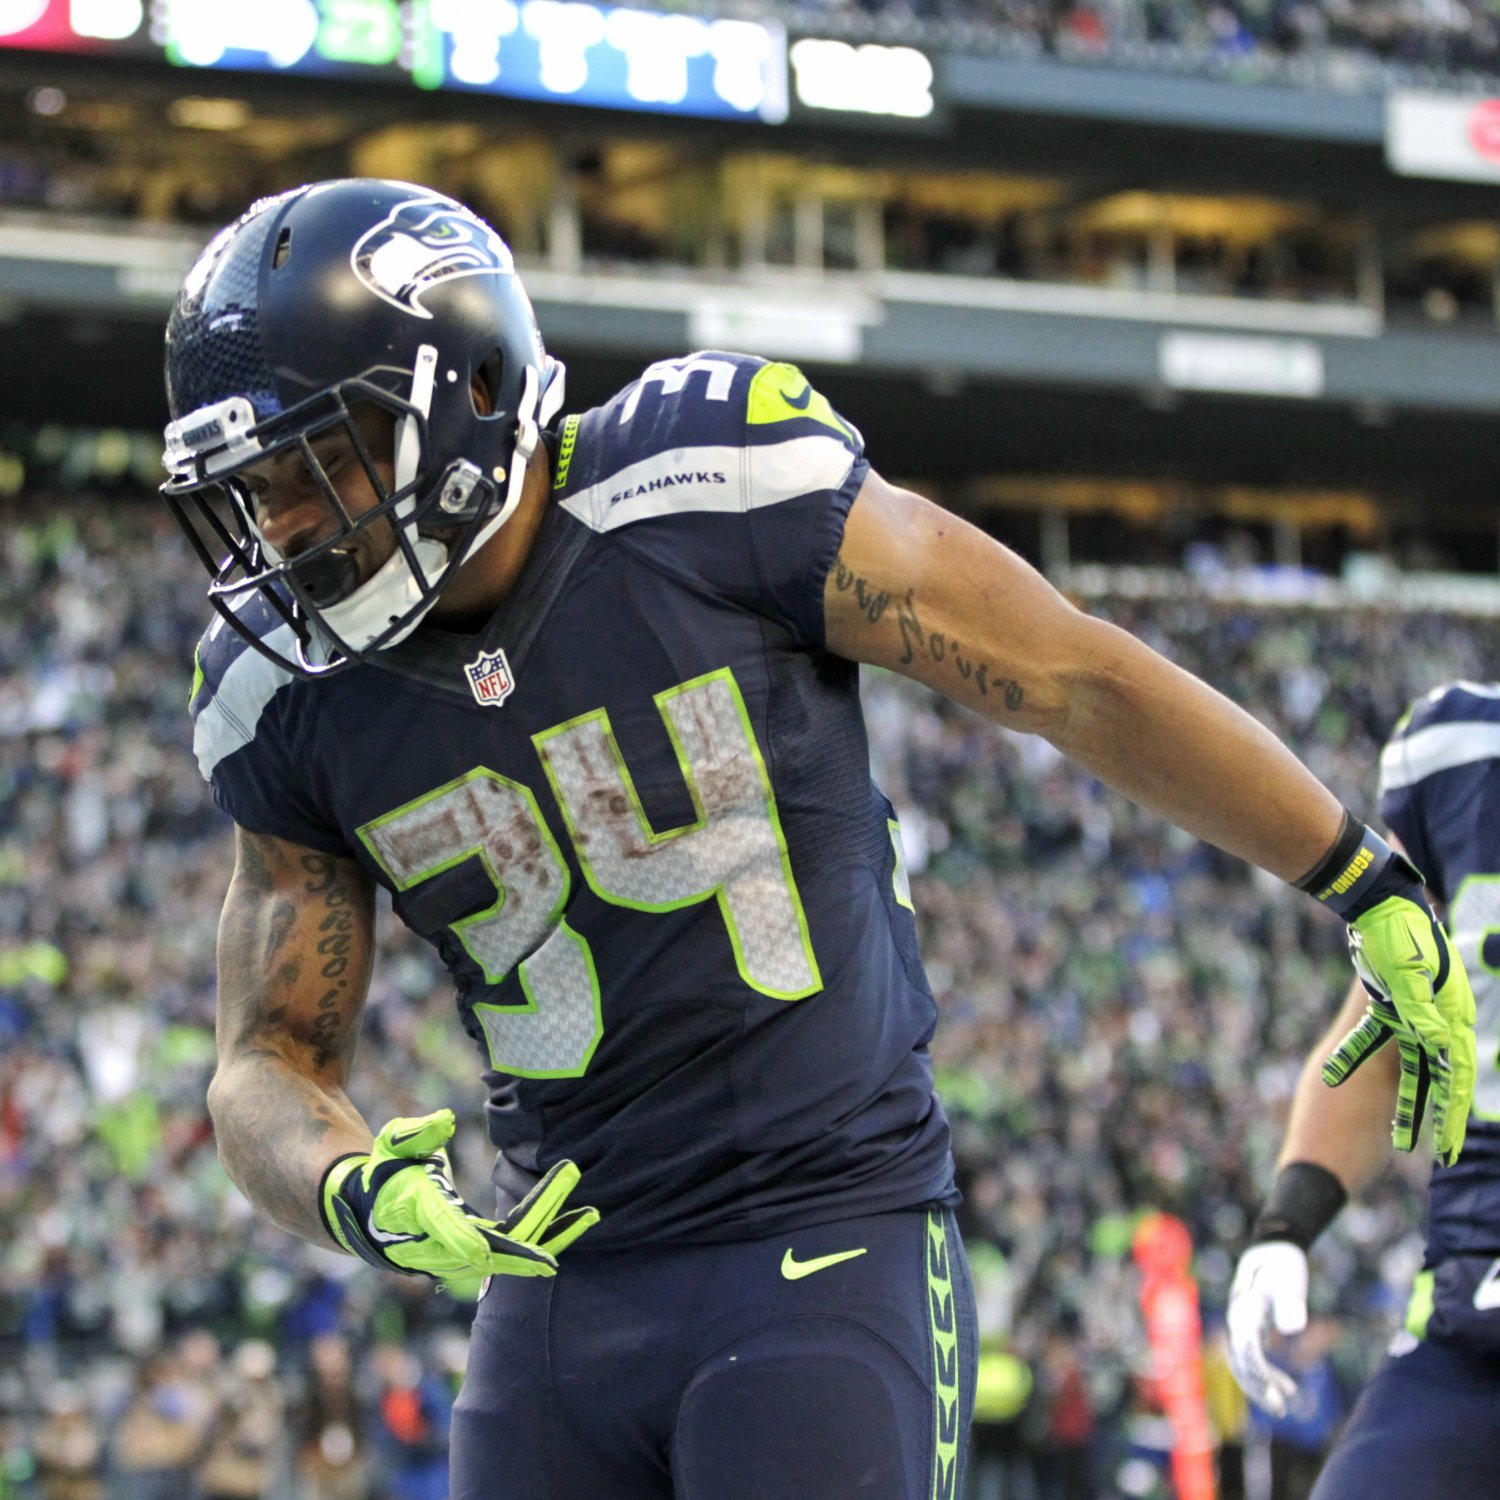 Nike NFL Mens Jerseys - Russell Wilson, Thomas Rawls Give Seahawks Playoff Hope in Huge ...